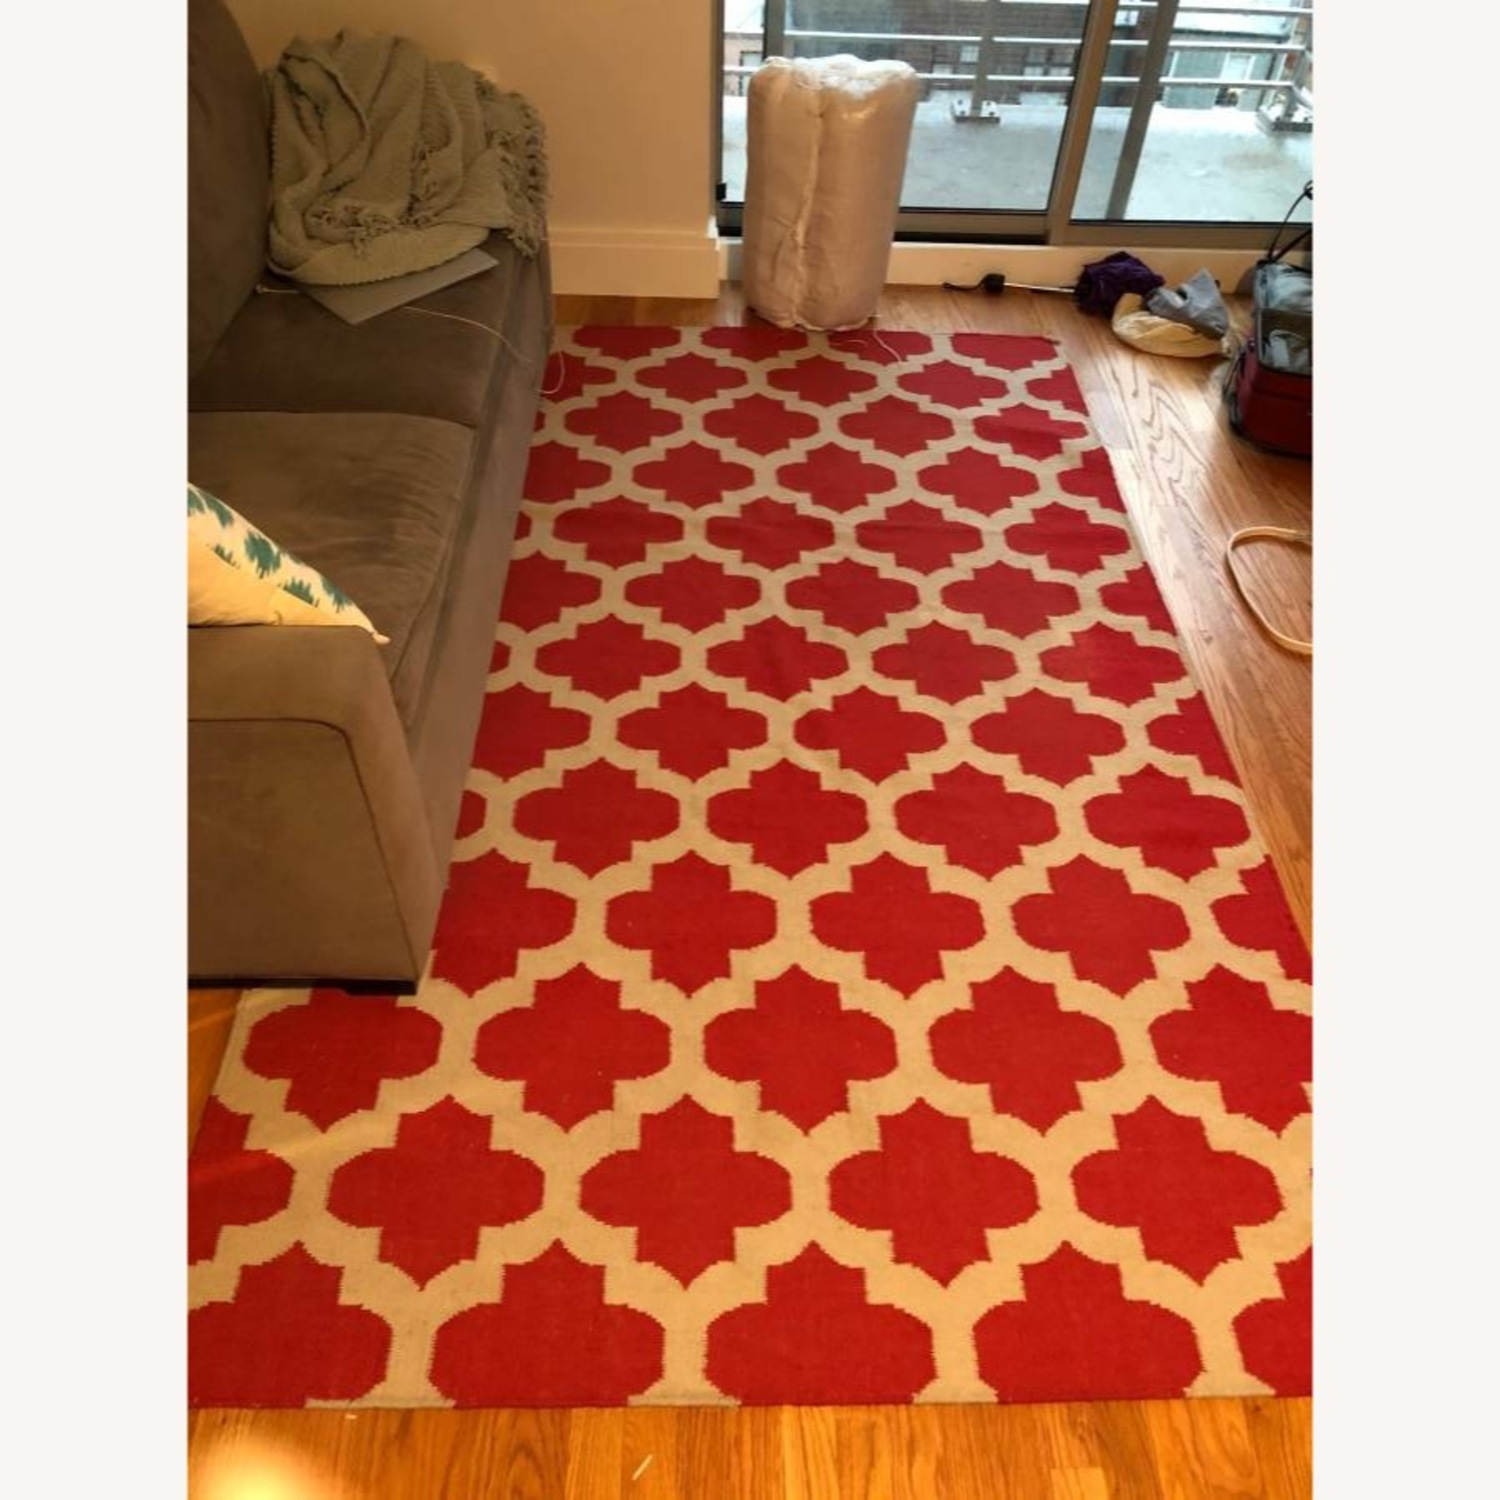 Safavieh Red & White Moroccan Style Rug - image-1